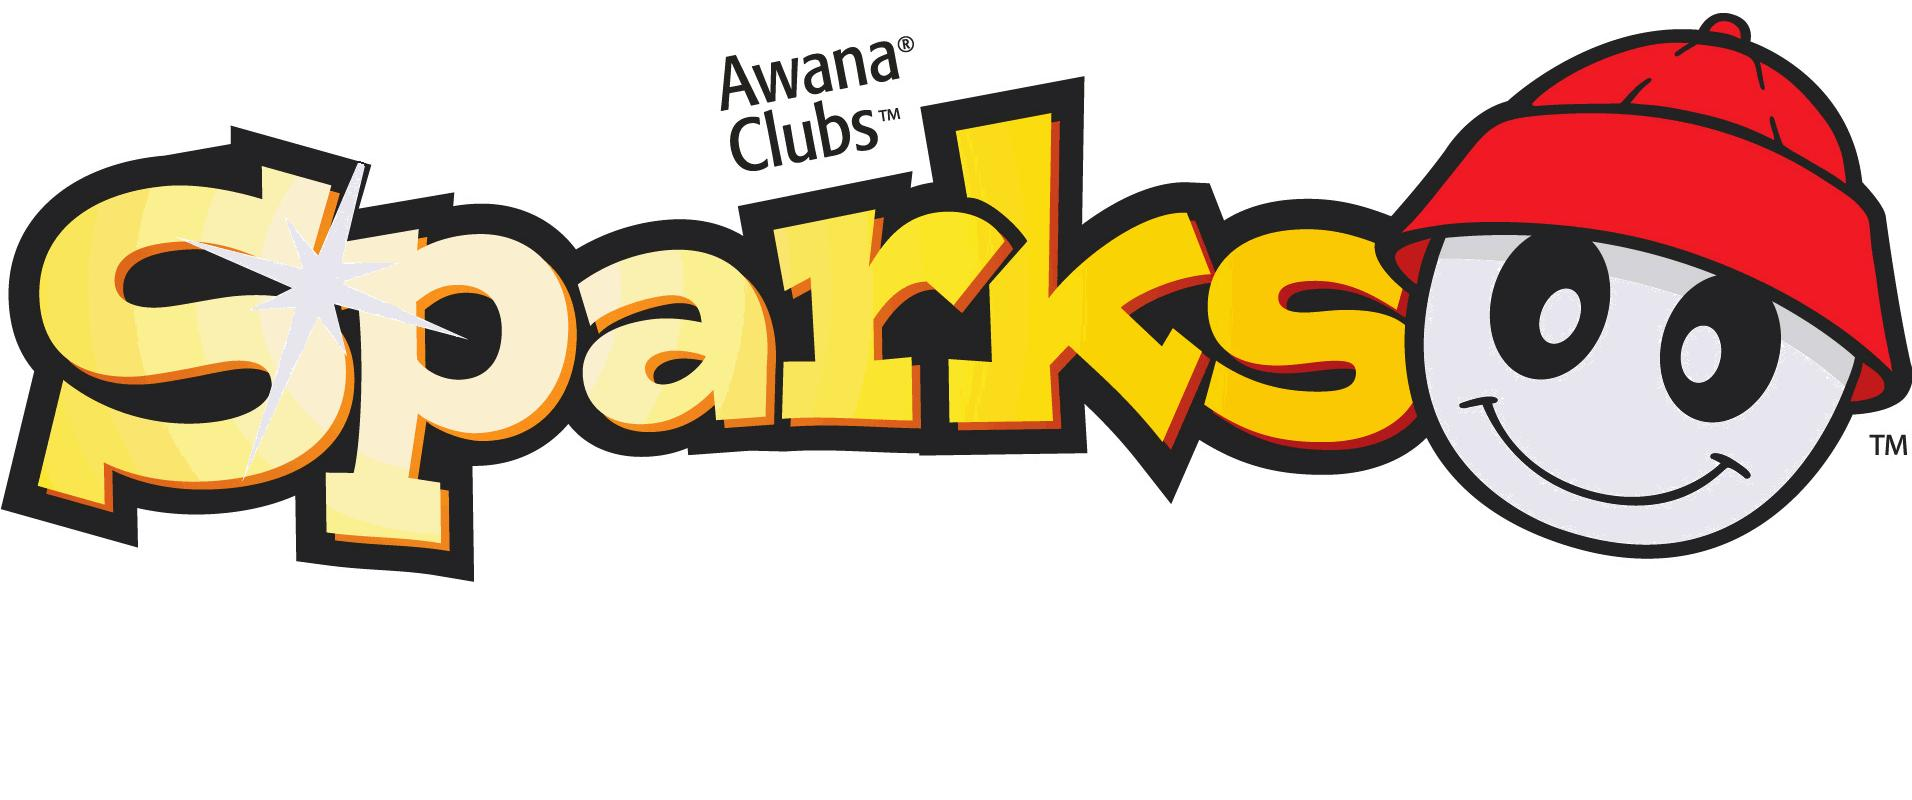 Collection of Awana clipart.